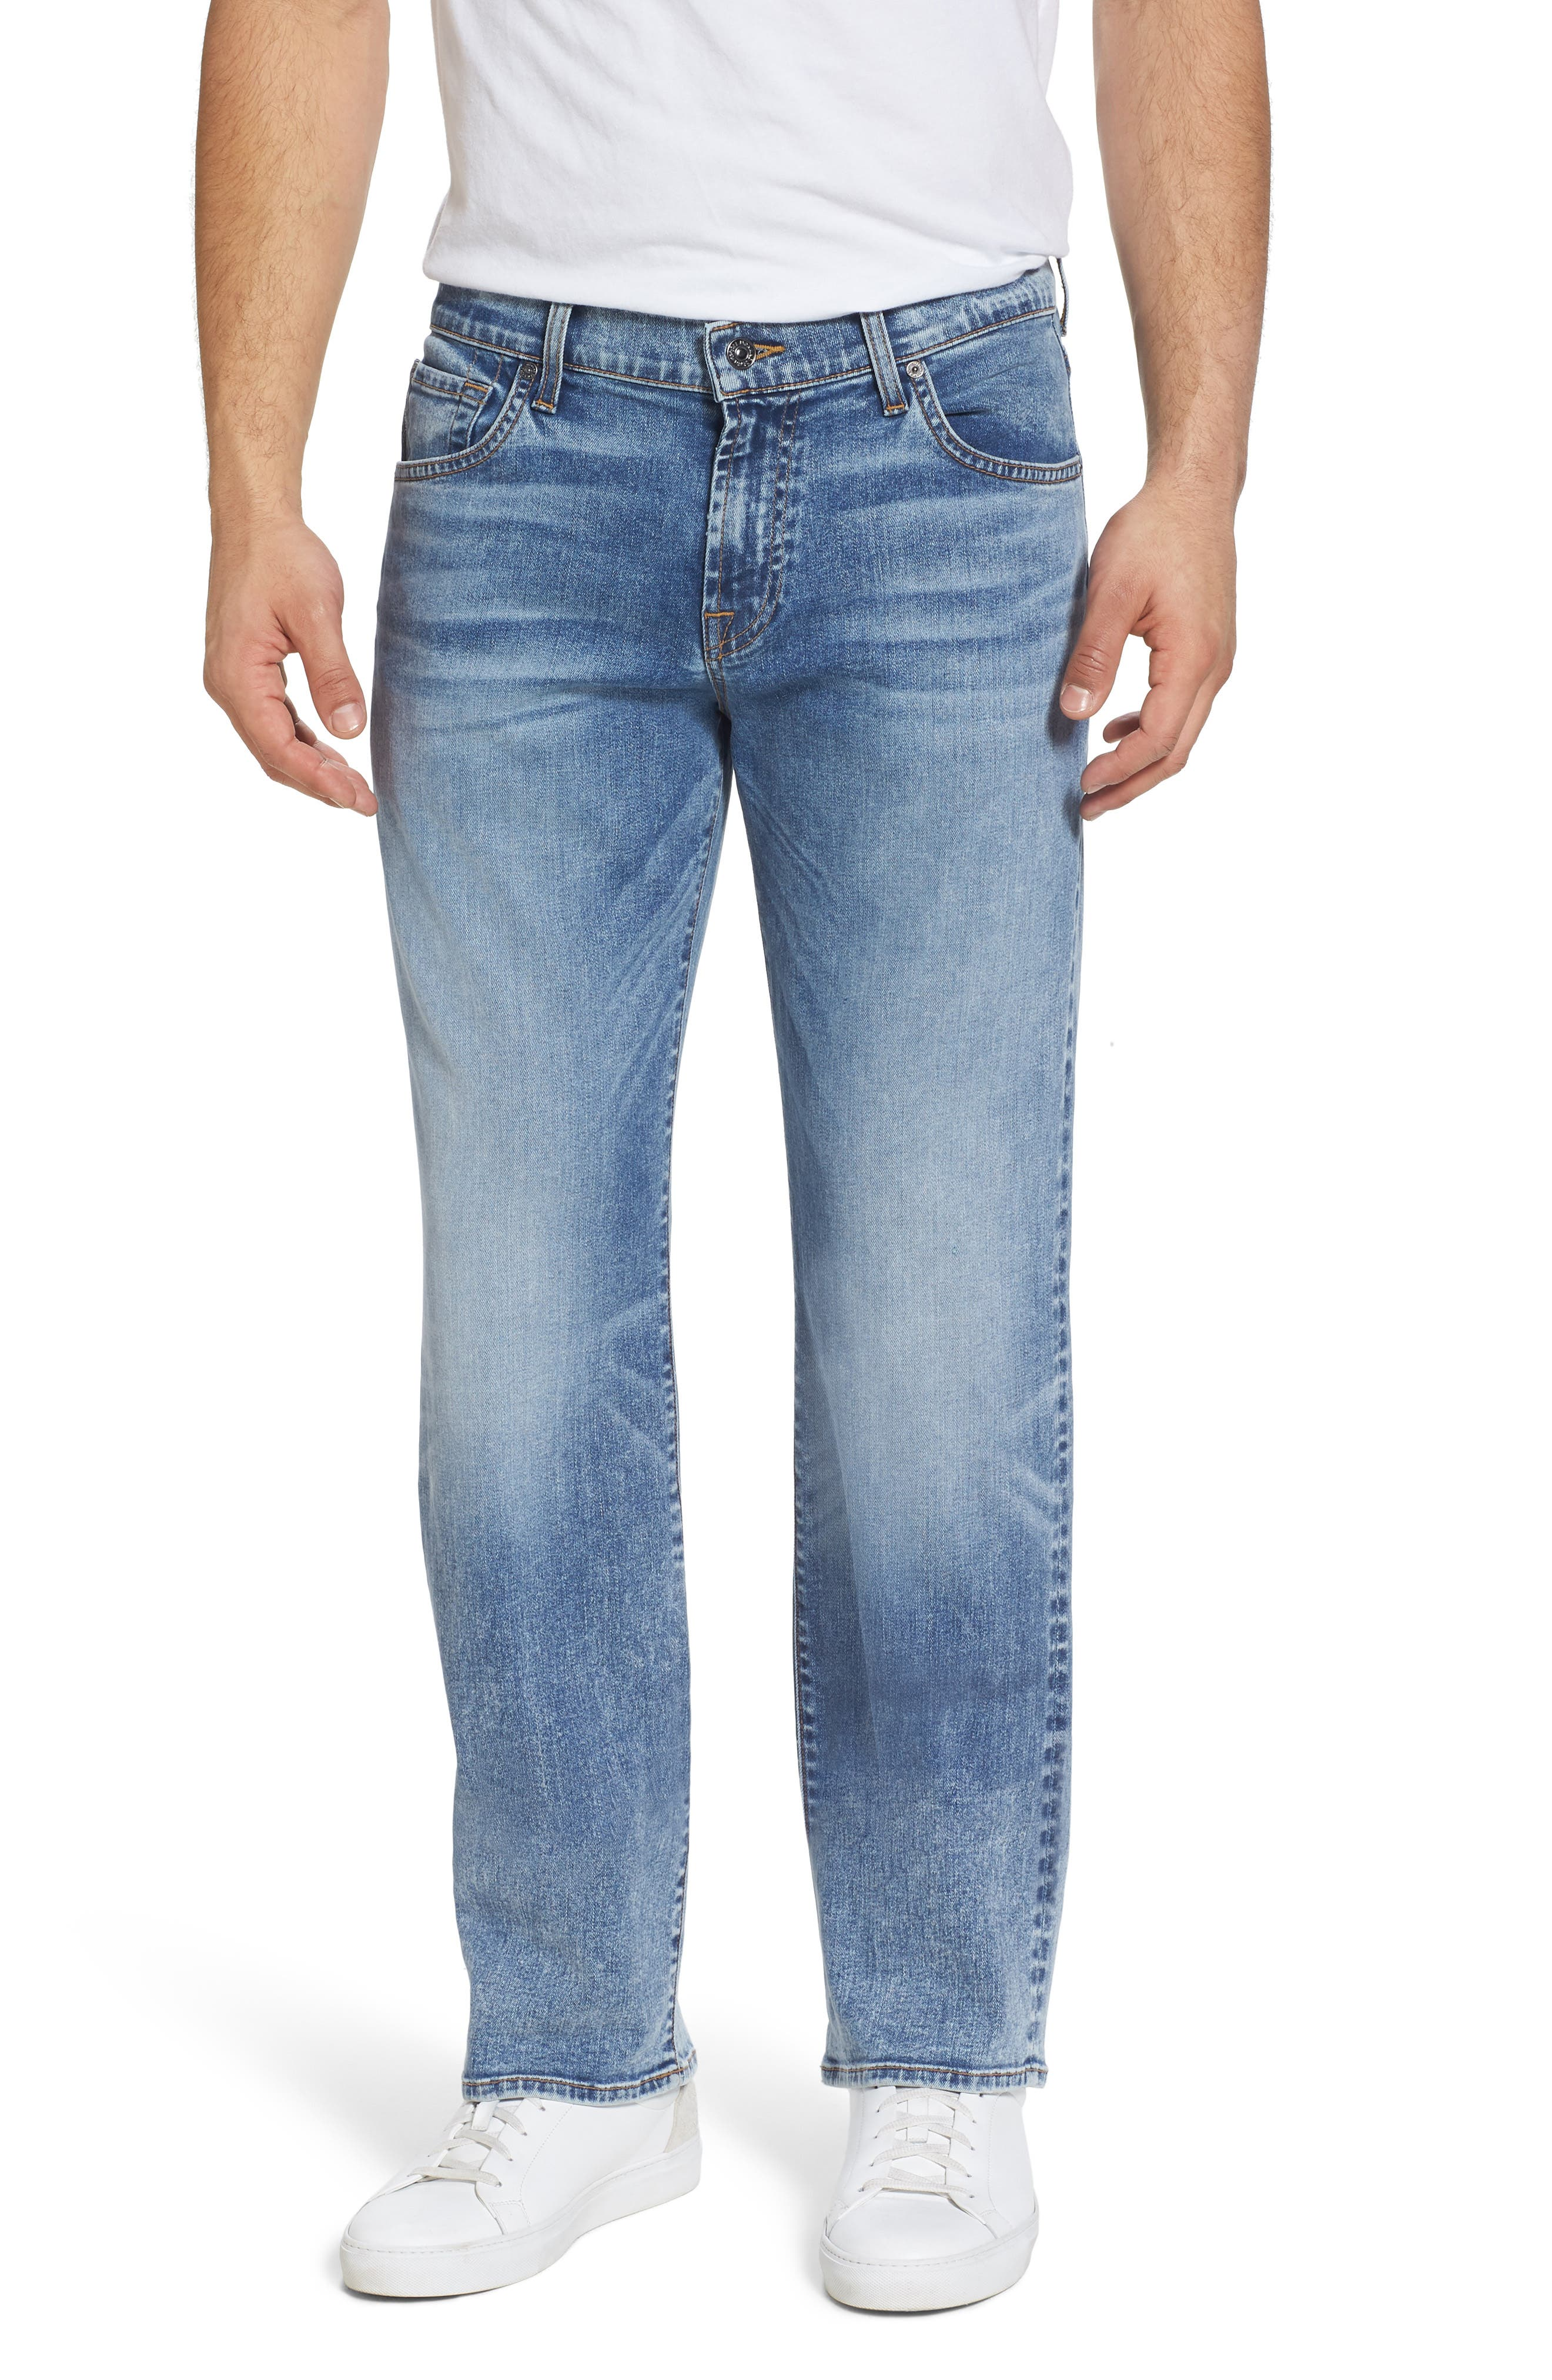 Austyn - Luxe Performance Relaxed Fit Jeans,                         Main,                         color, 404